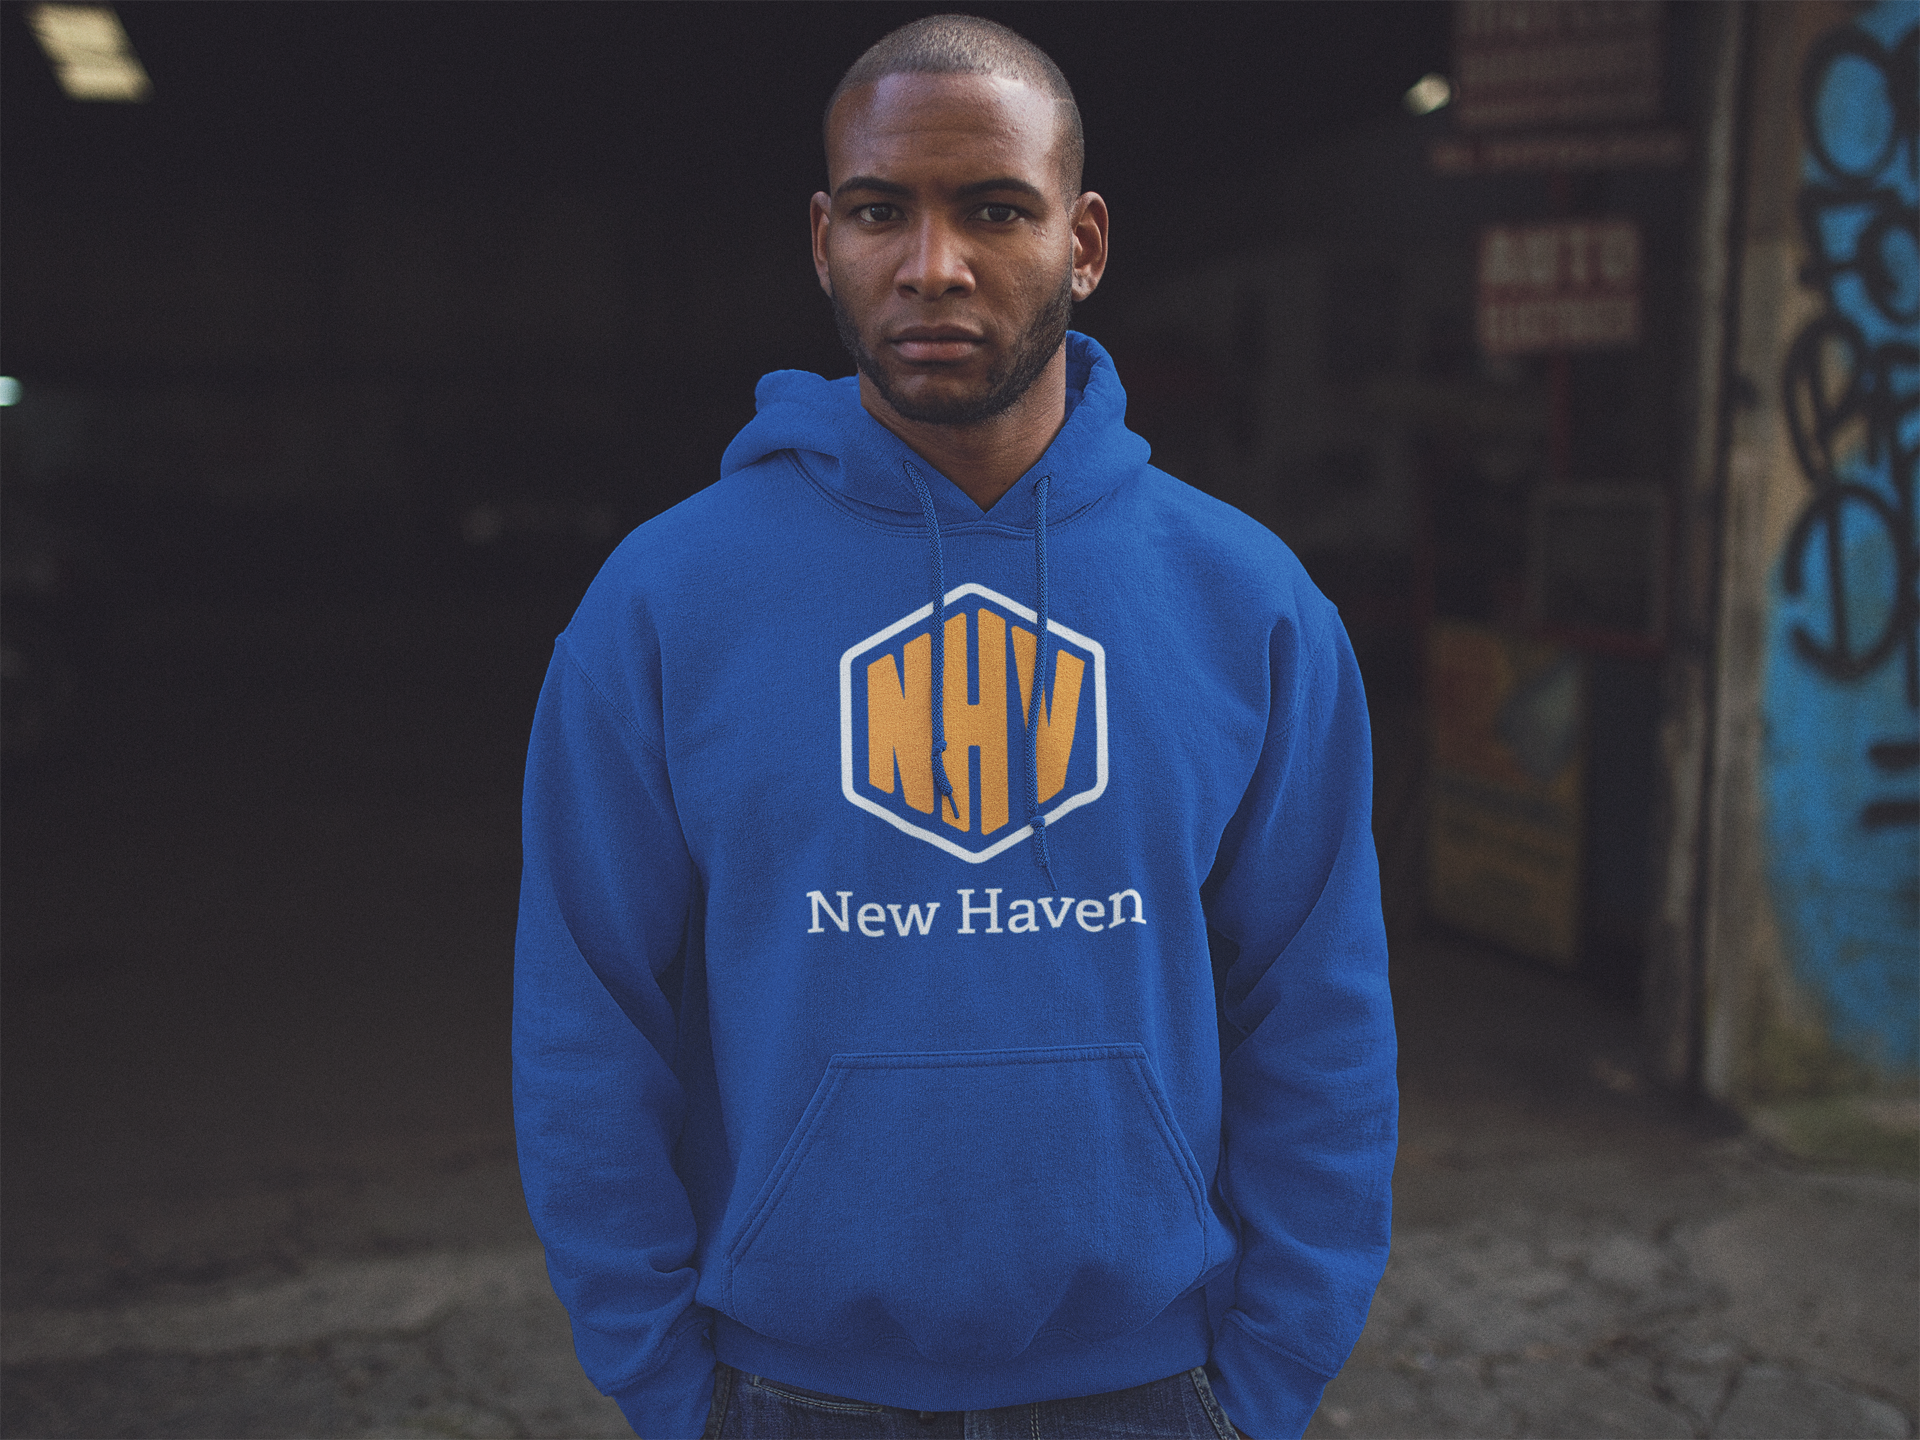 NHV placeit (2).png